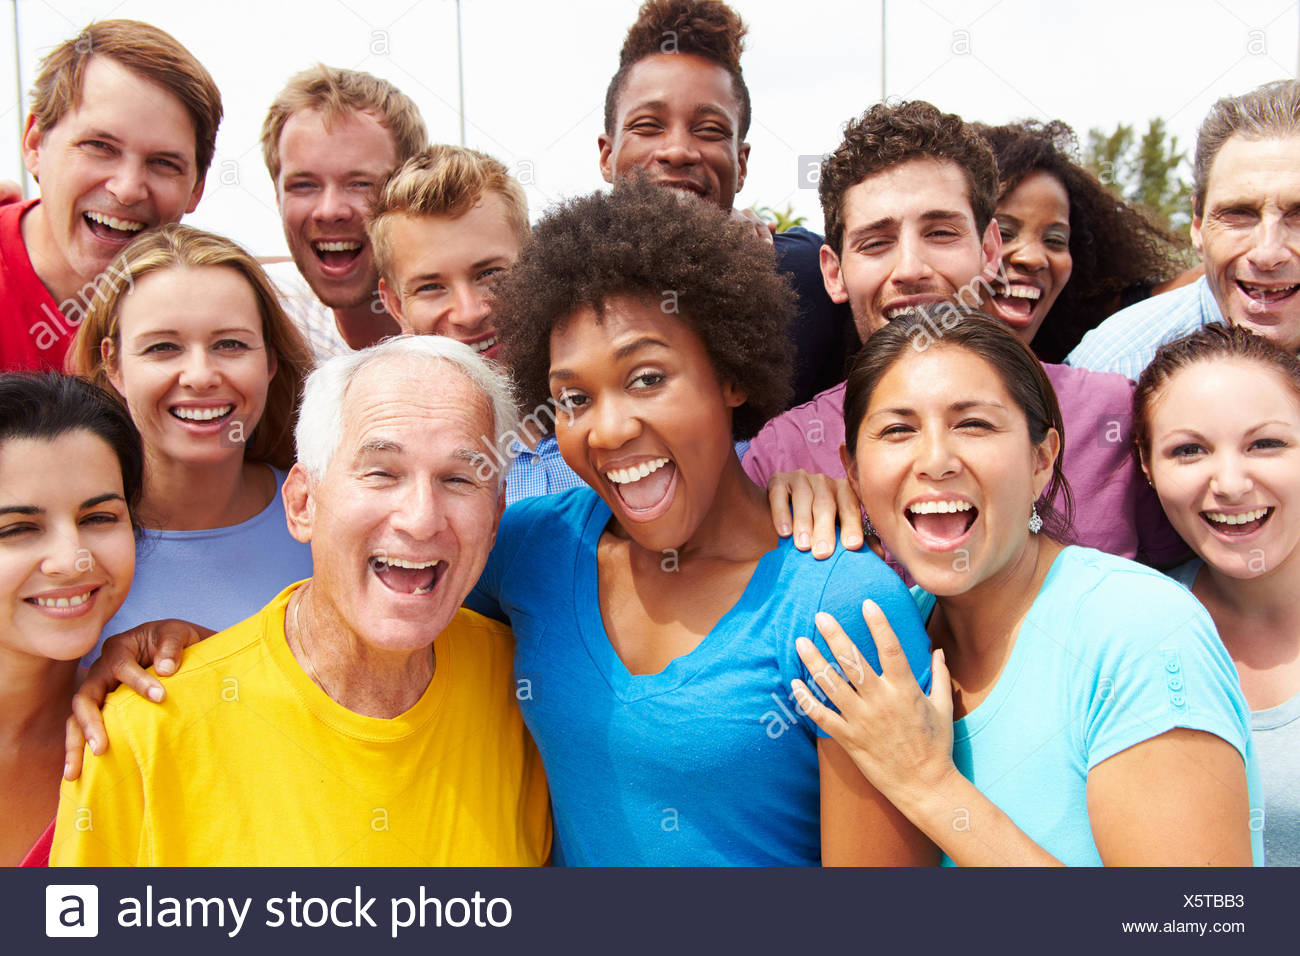 Outdoor Portrait Of Multi-Ethnic Crowd - Stock Image